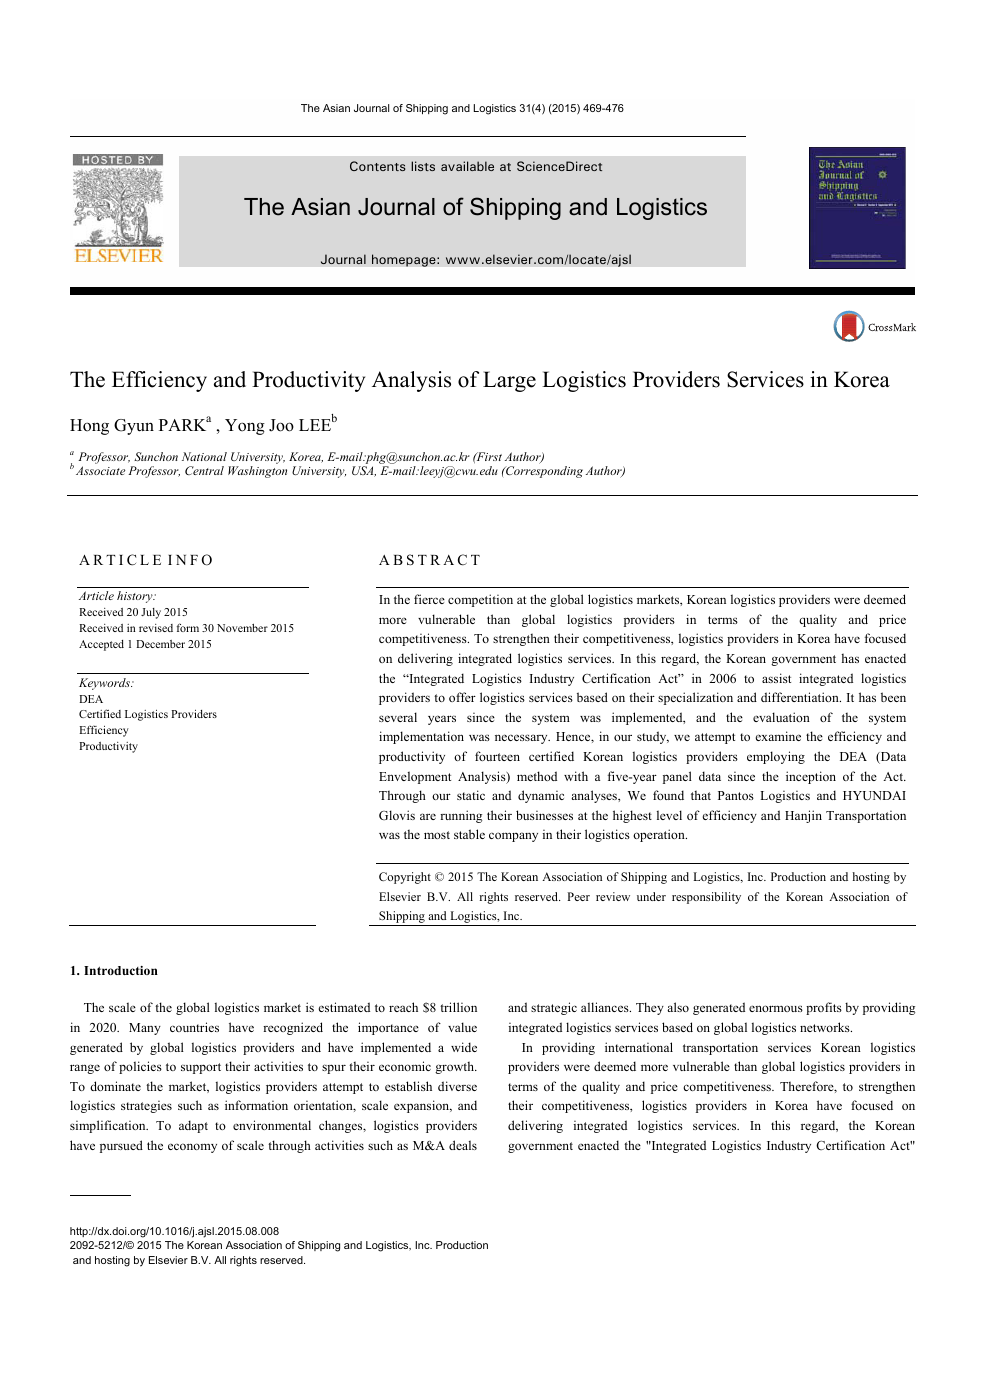 The Efficiency and Productivity Analysis of Large Logistics